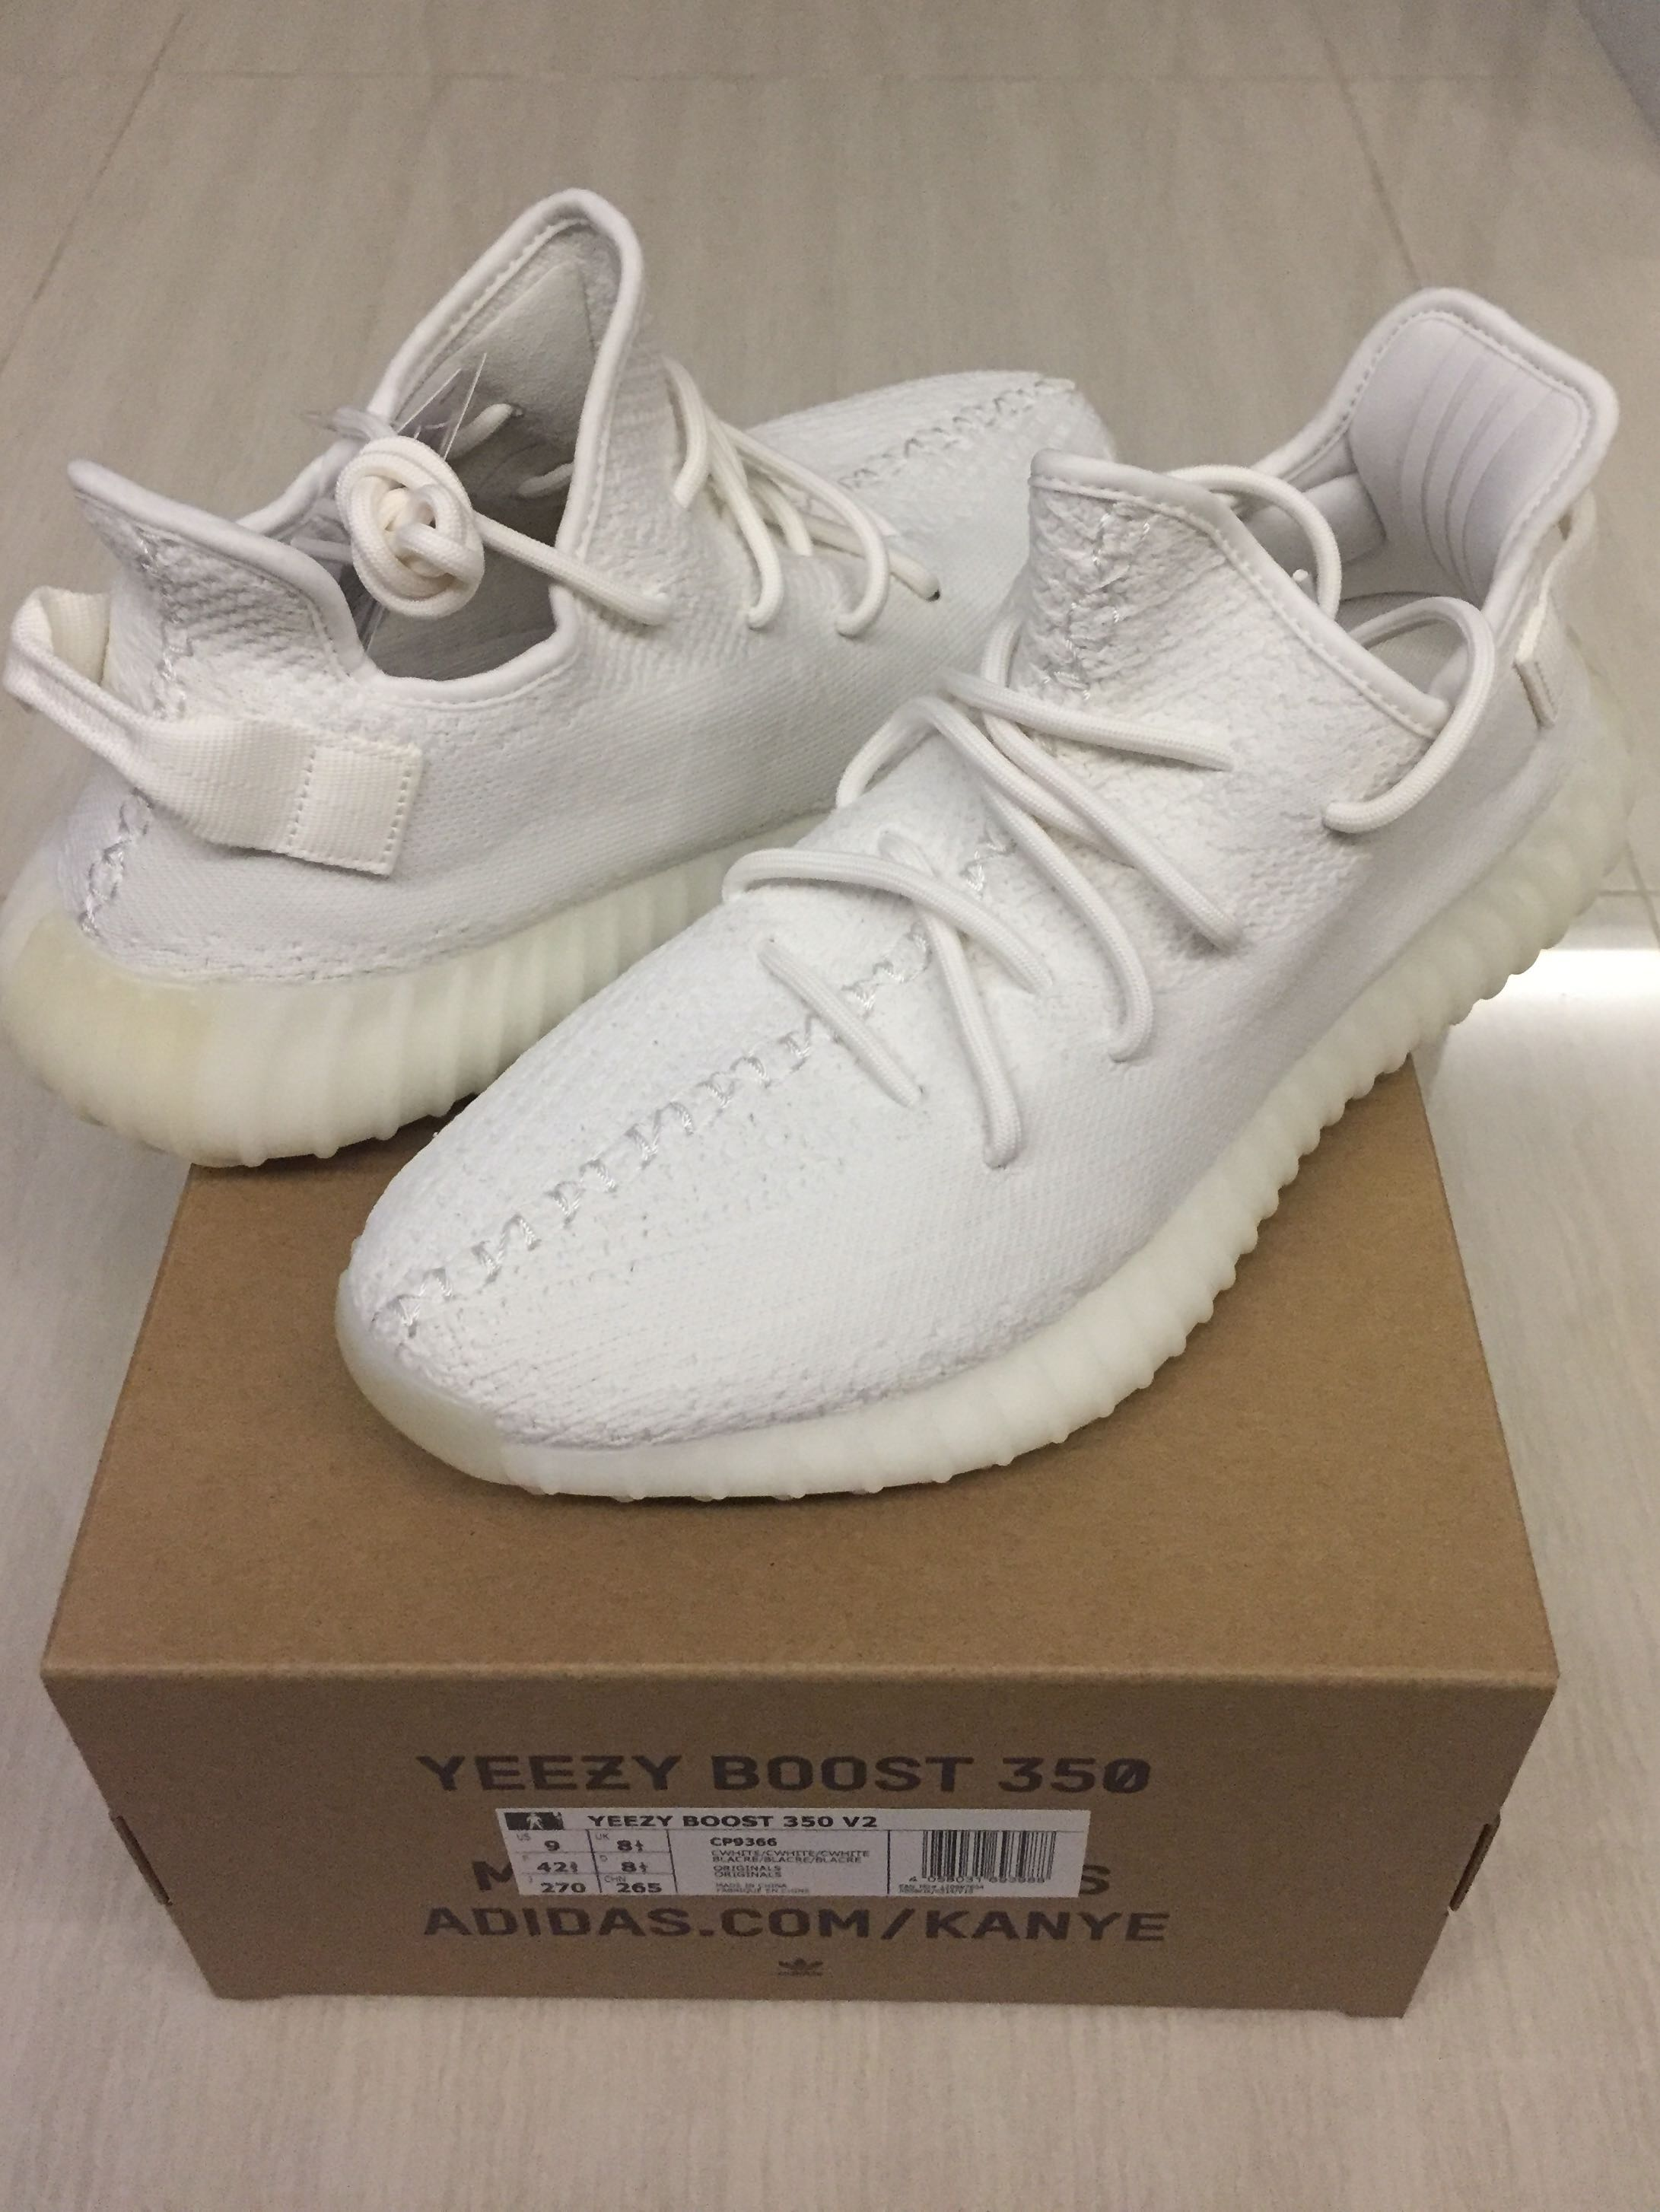 e0c92a31 Yeezy Boost 350 V2 Cream White US9, Men's Fashion, Footwear ...